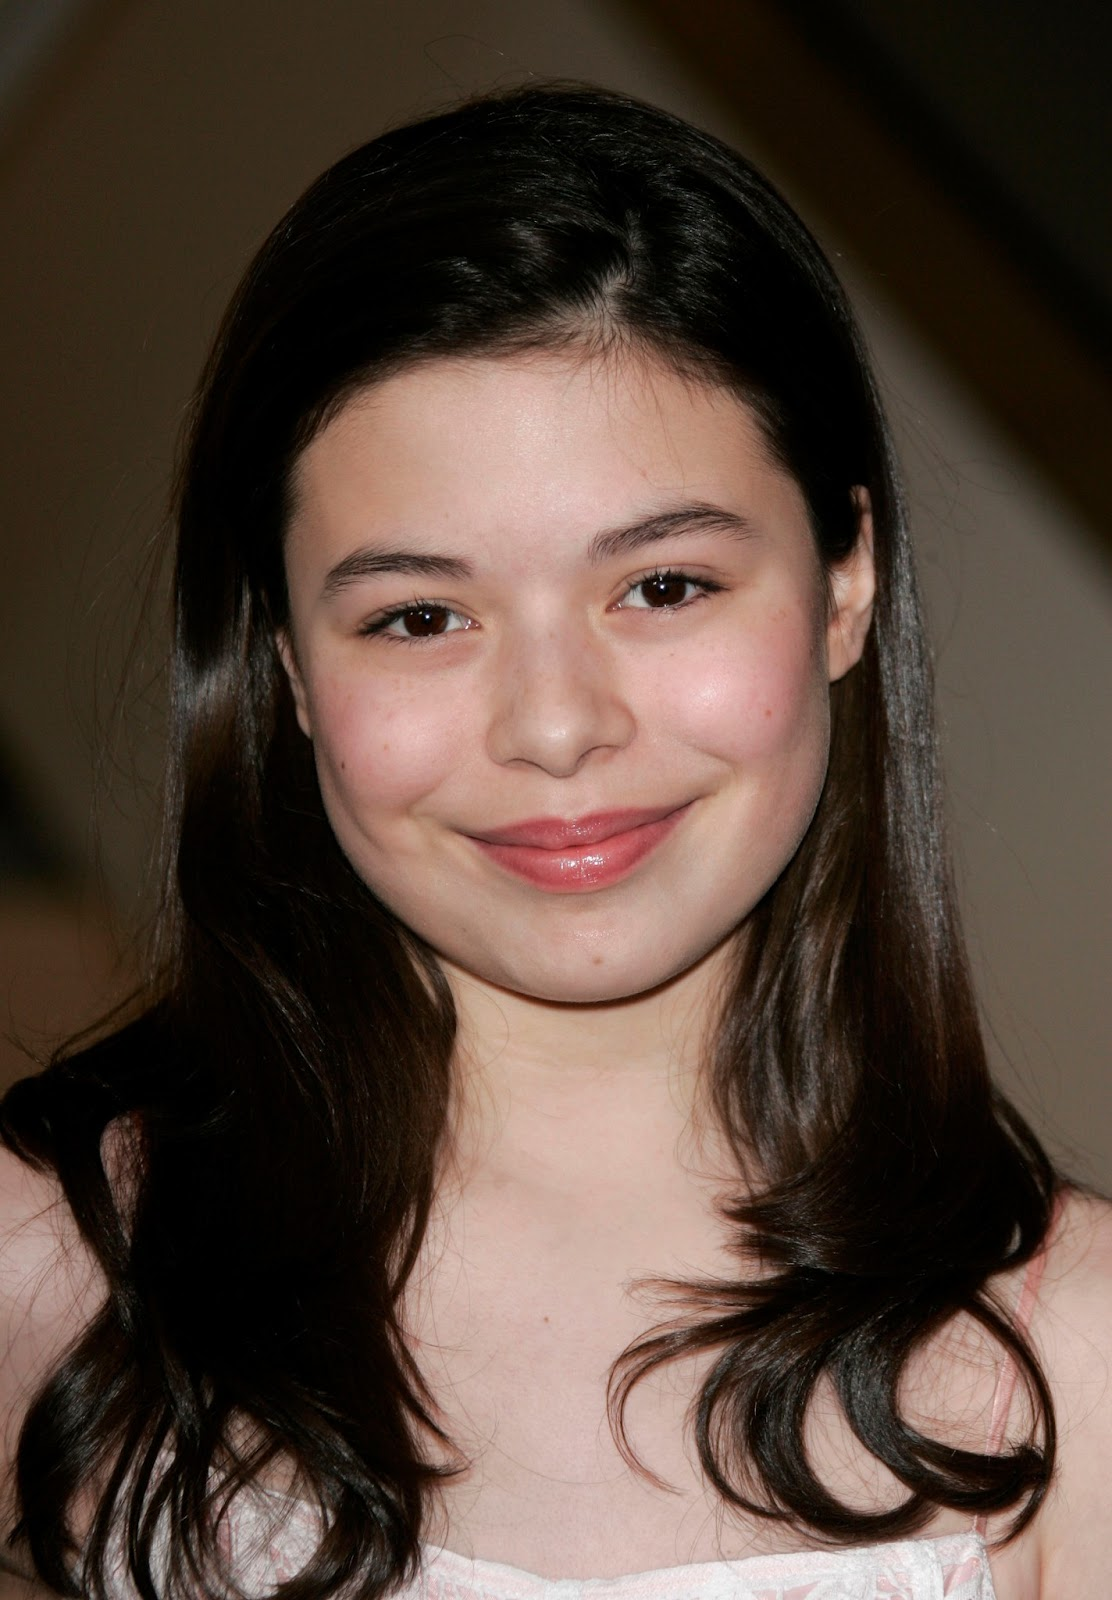 Red Carpet Dresses: Miranda Cosgrove - Keeping Up With